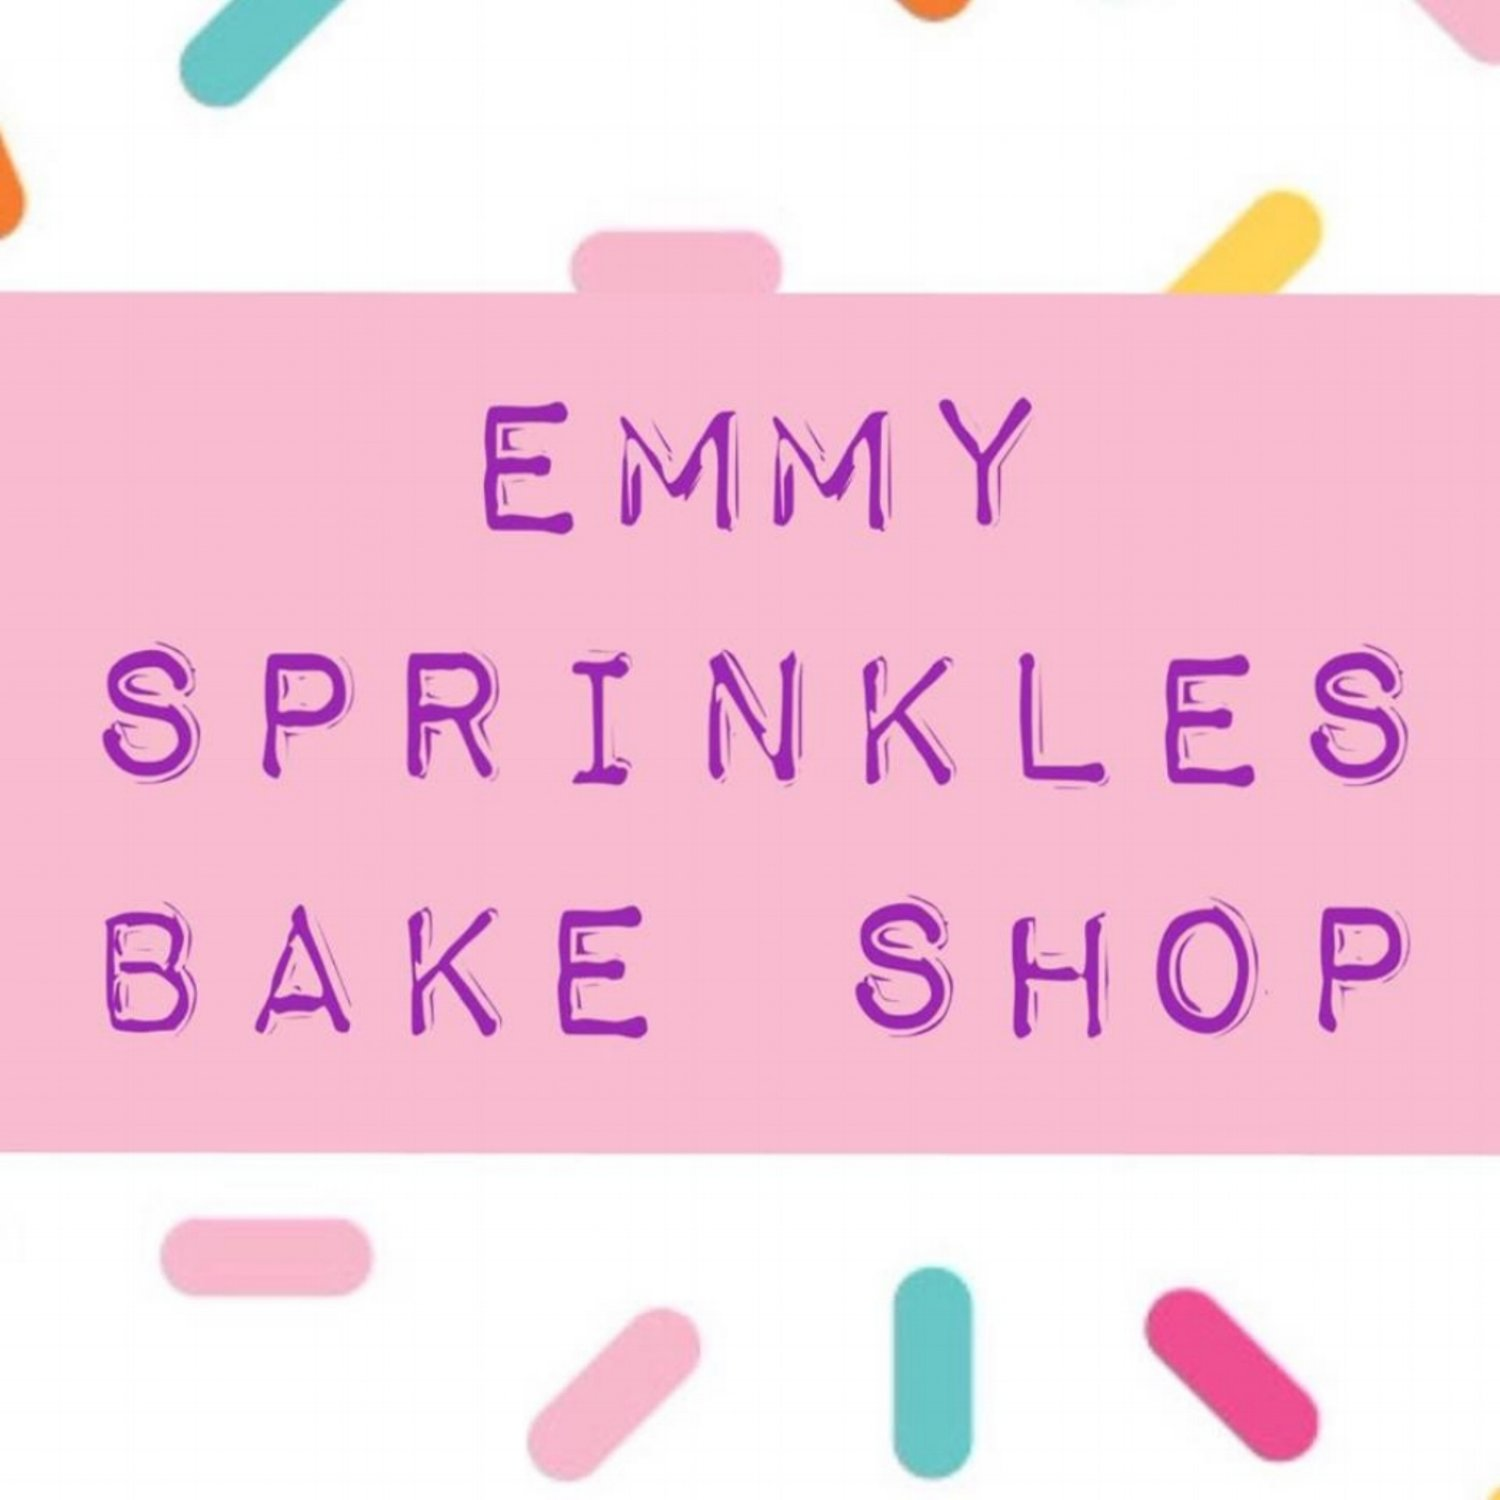 Emmy Sprinkles Bake Shop